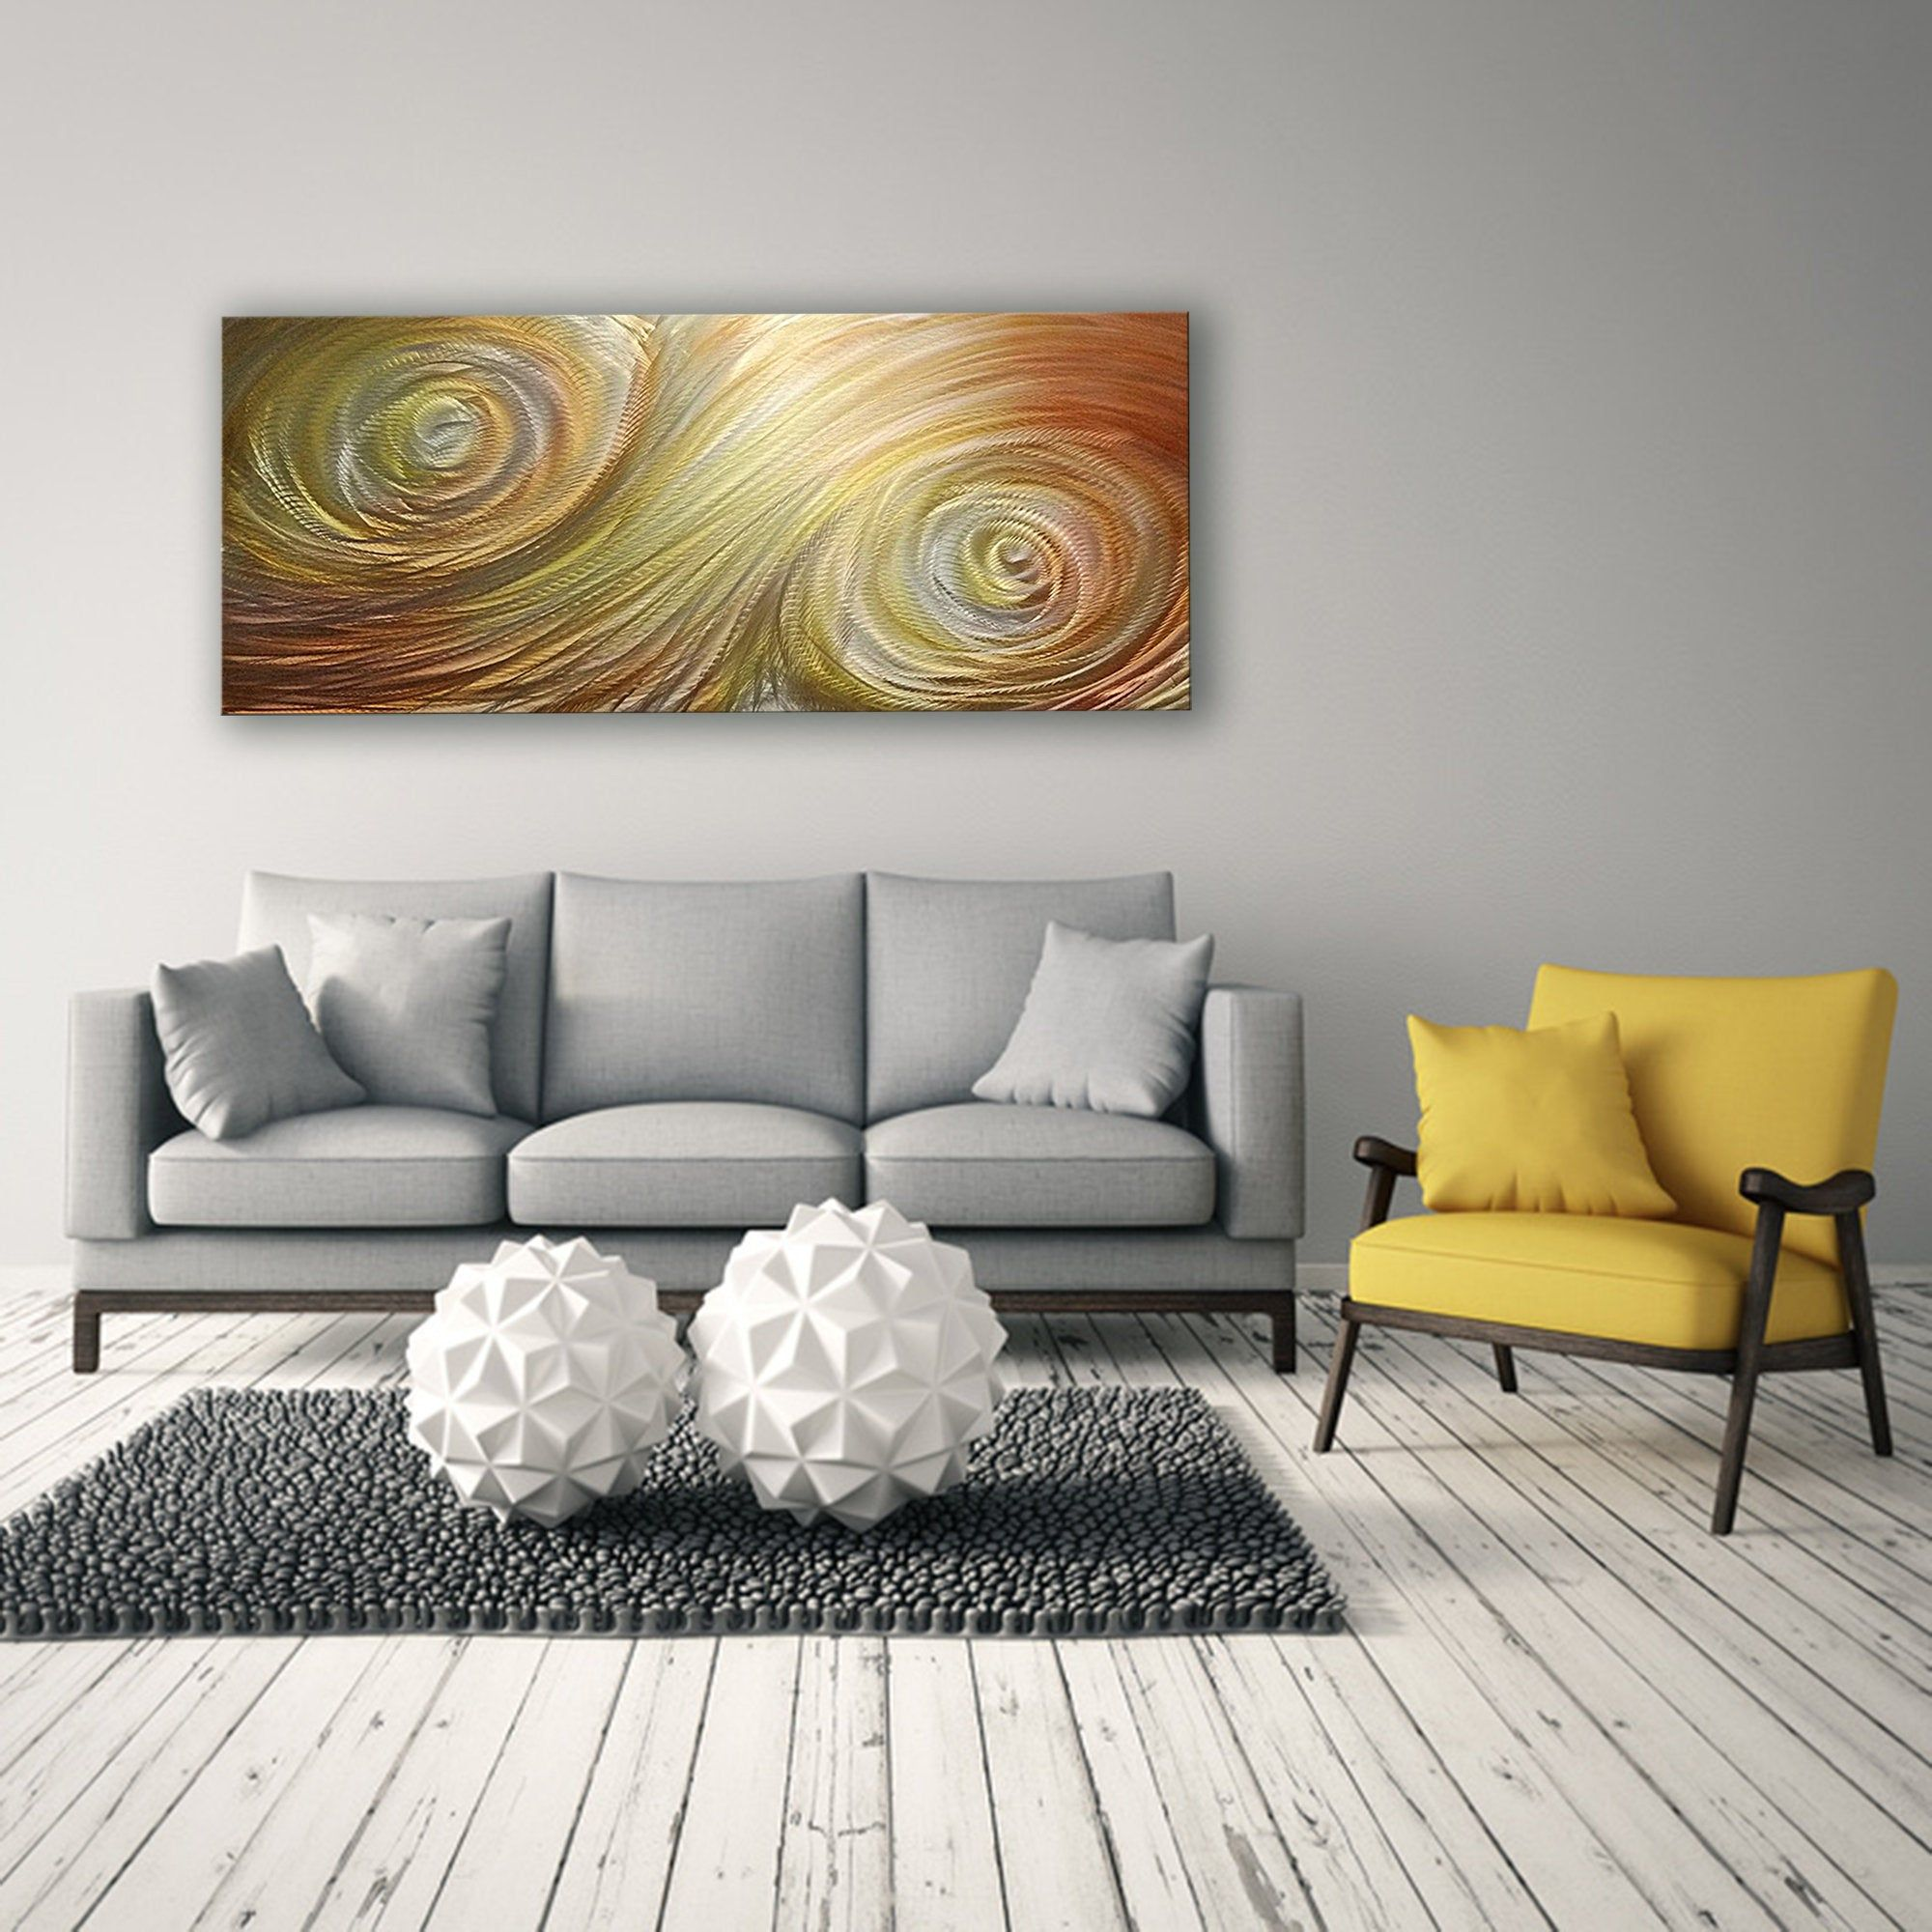 Orange Yellow Metal Wall Art Contemporary Wall Sculpture Etsy In 2020 Metal Tree Wall Art Contemporary Wall Sculptures Abstract Metal Wall Art #wall #sculptures #for #living #room